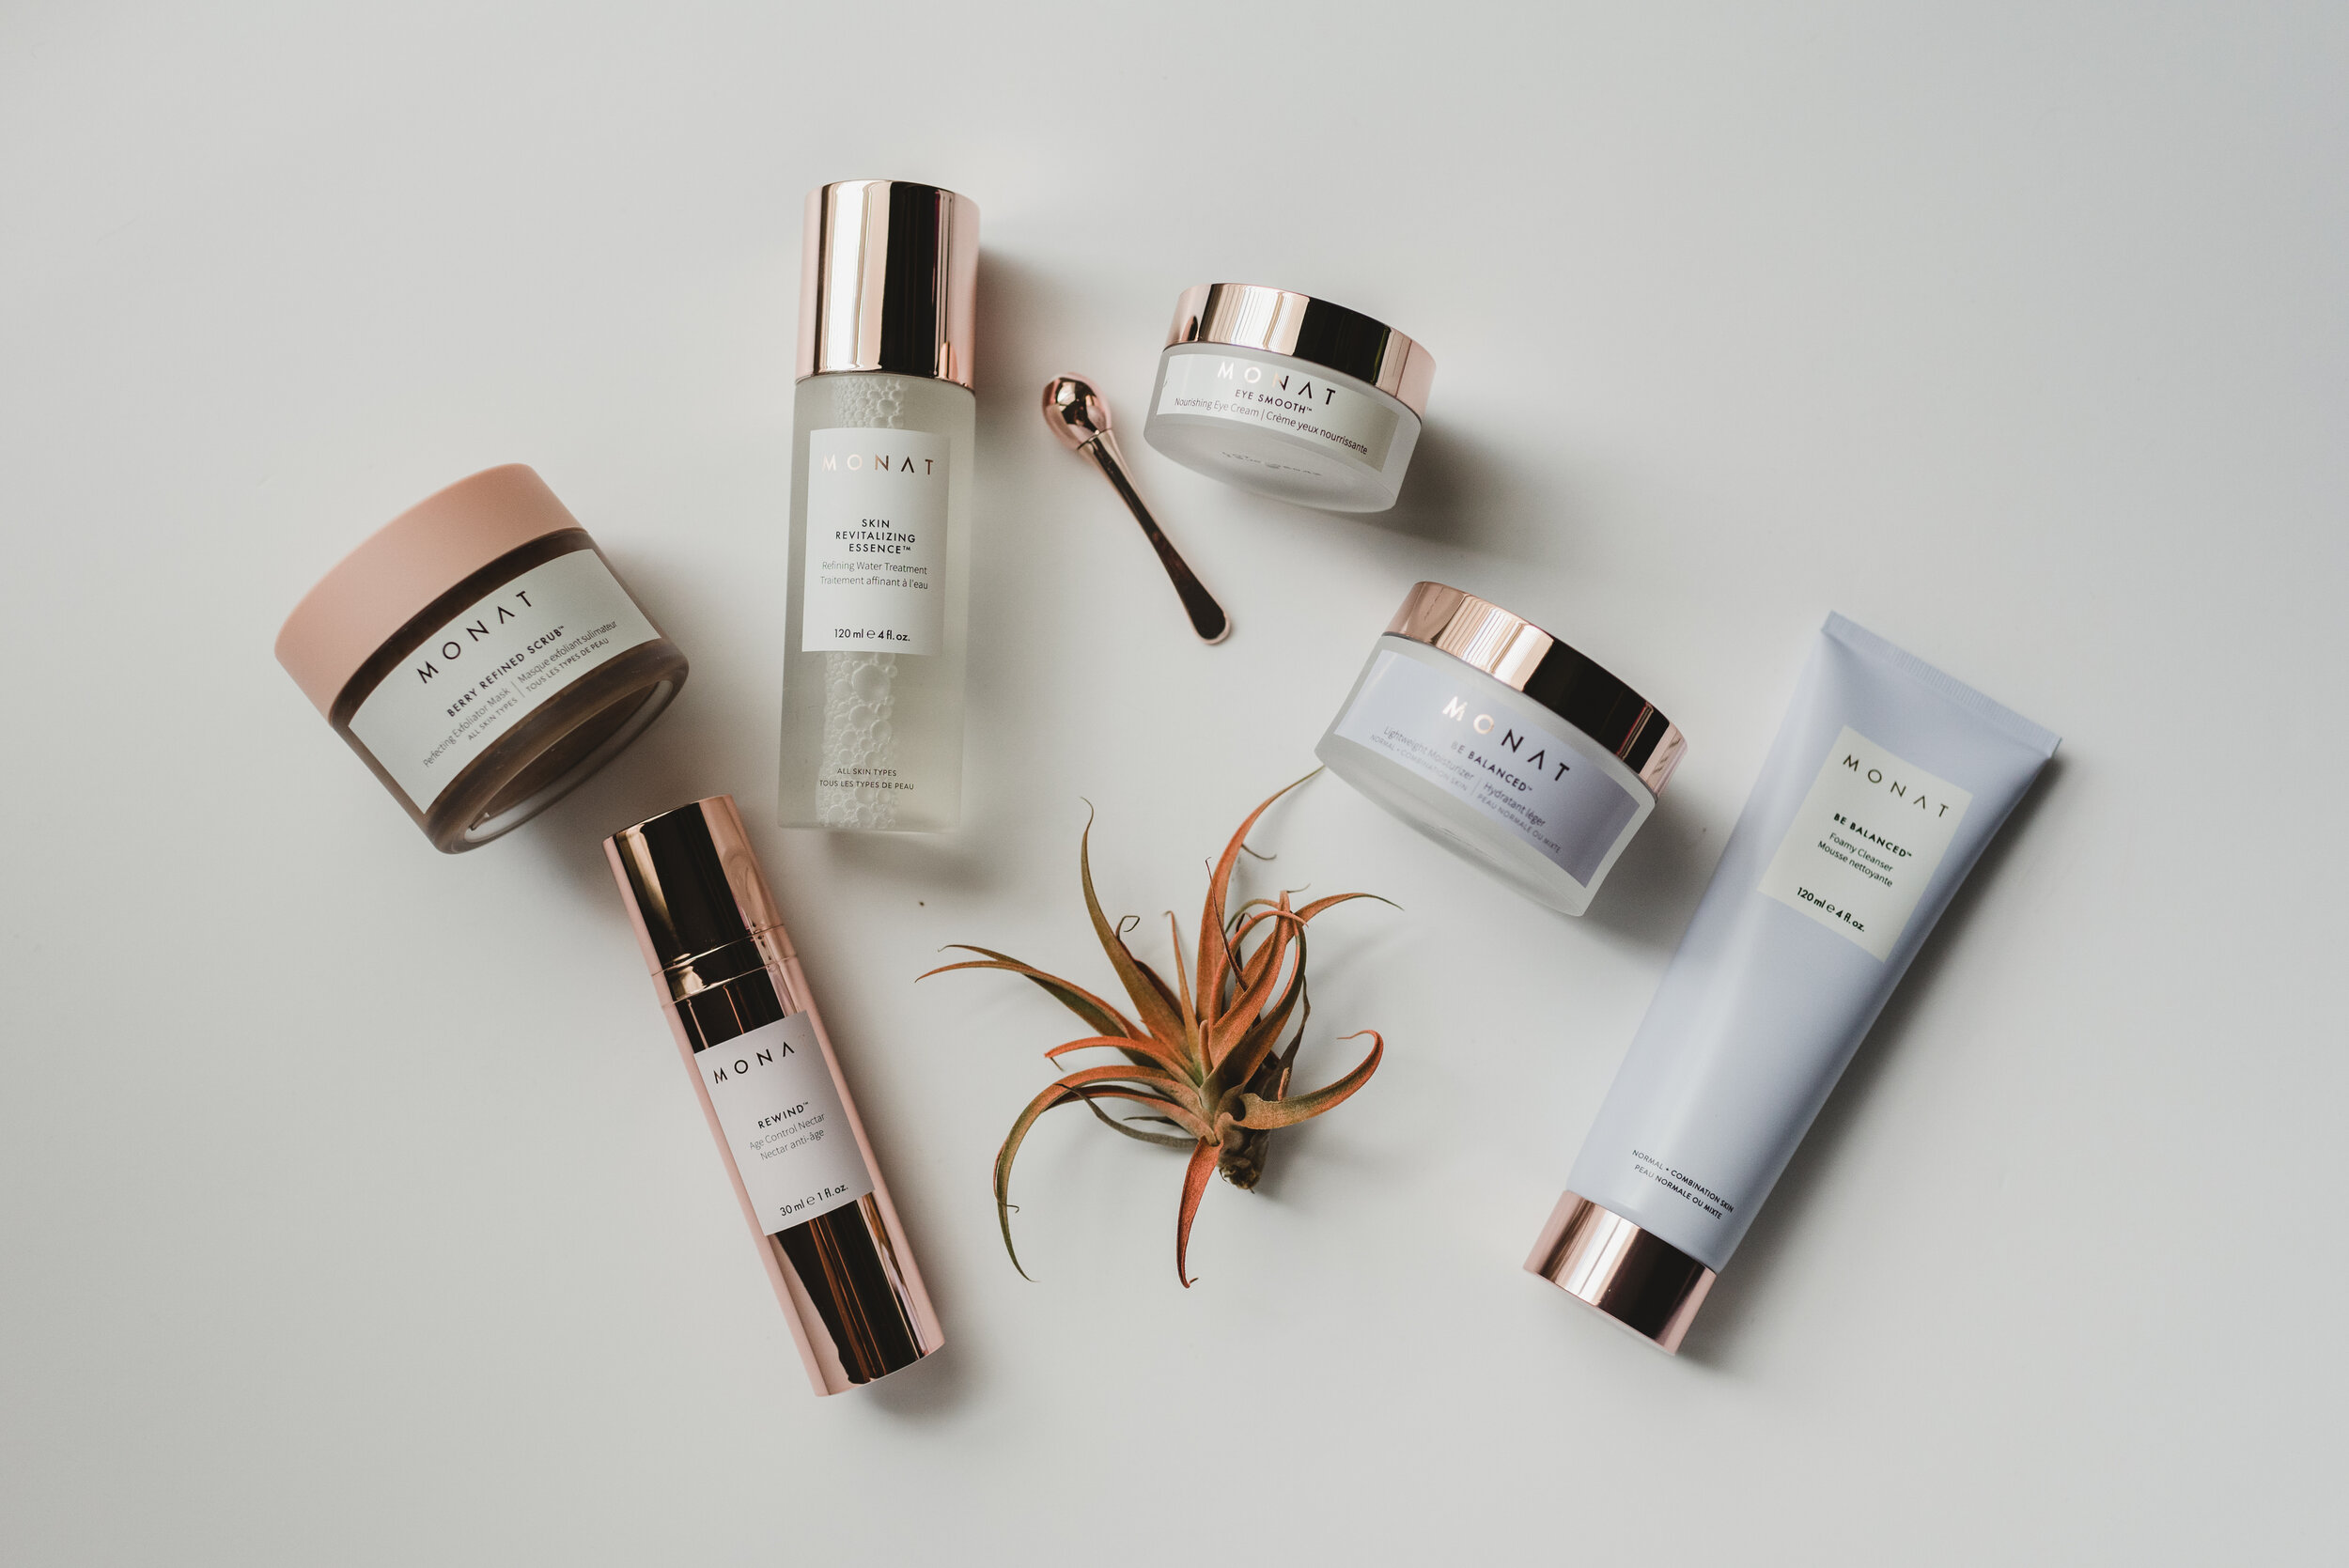 monat anti aging naturally based skincare